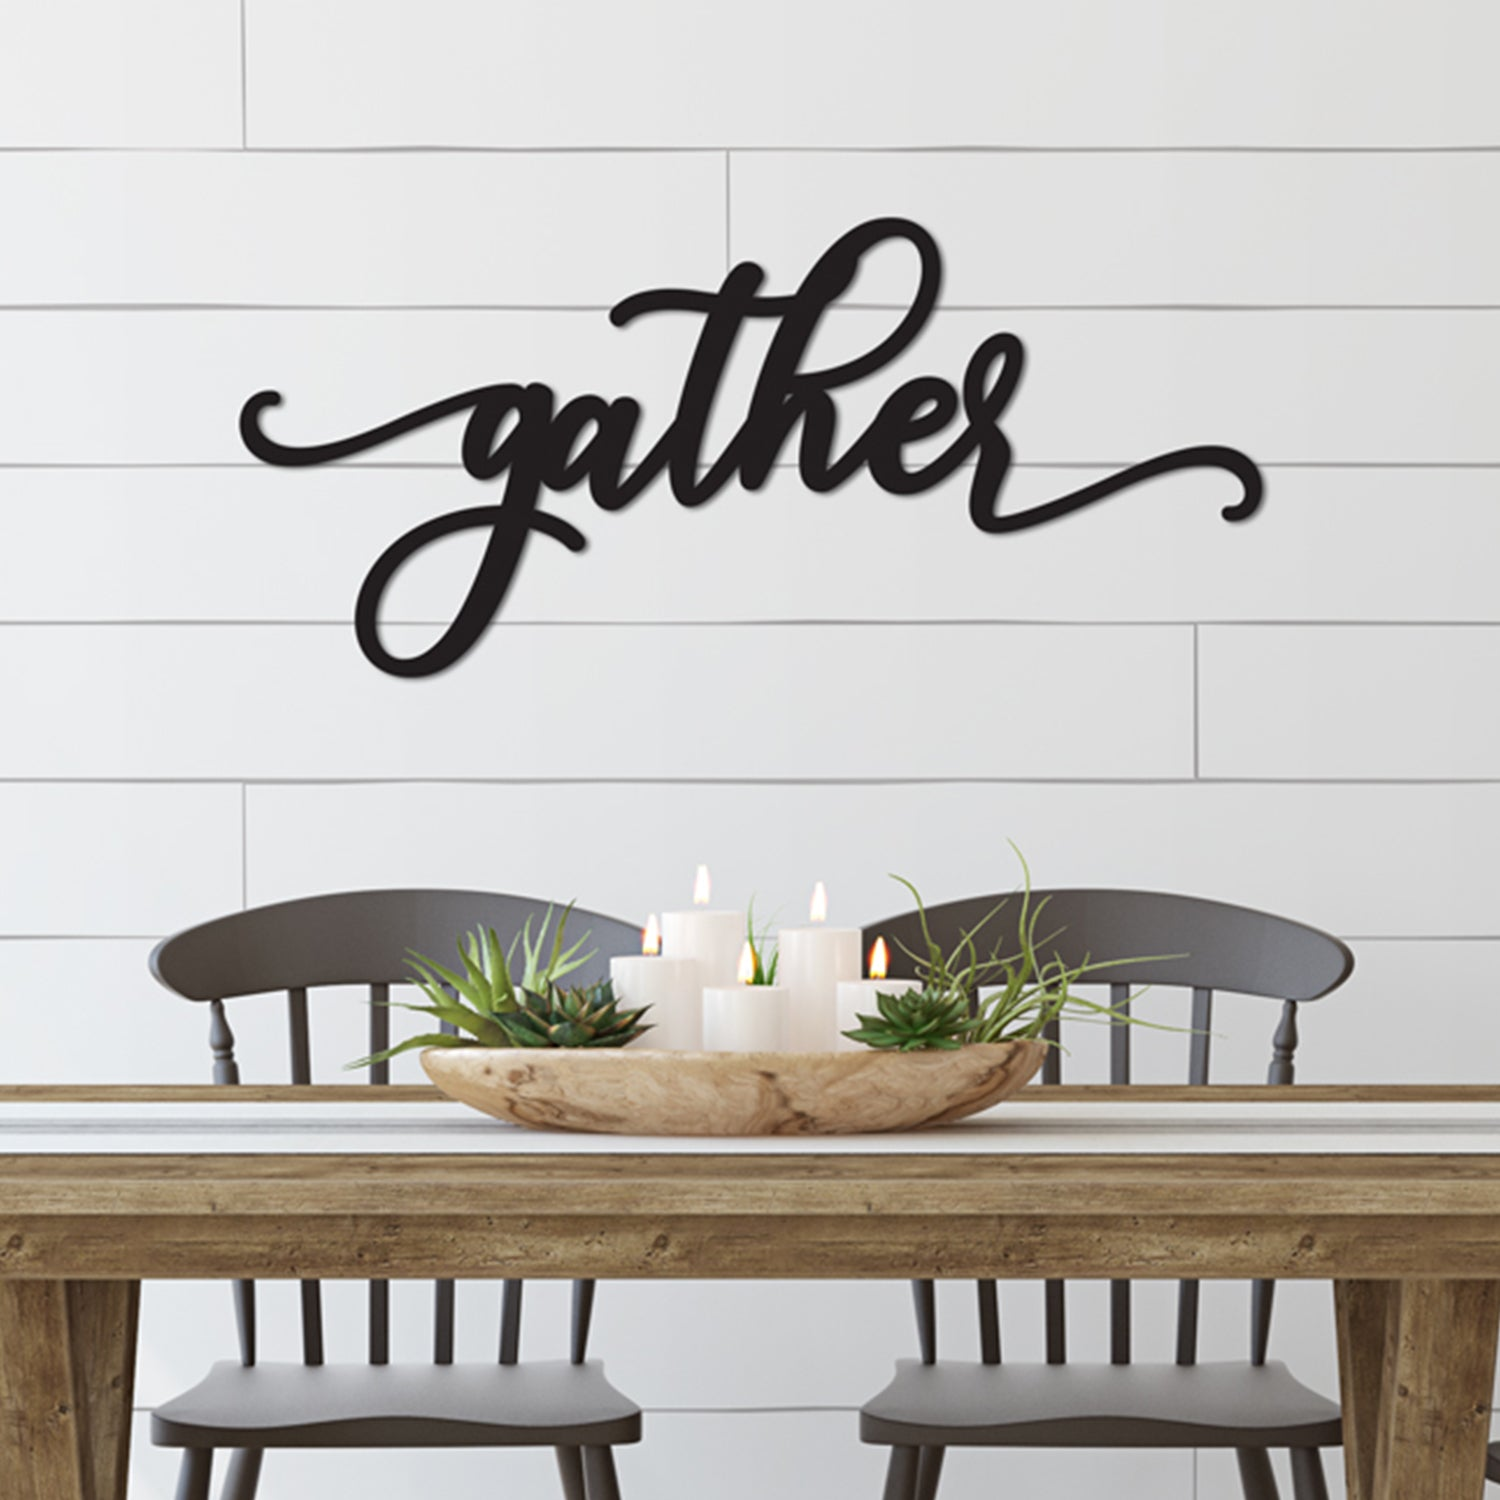 Gather Word Wood Cutout